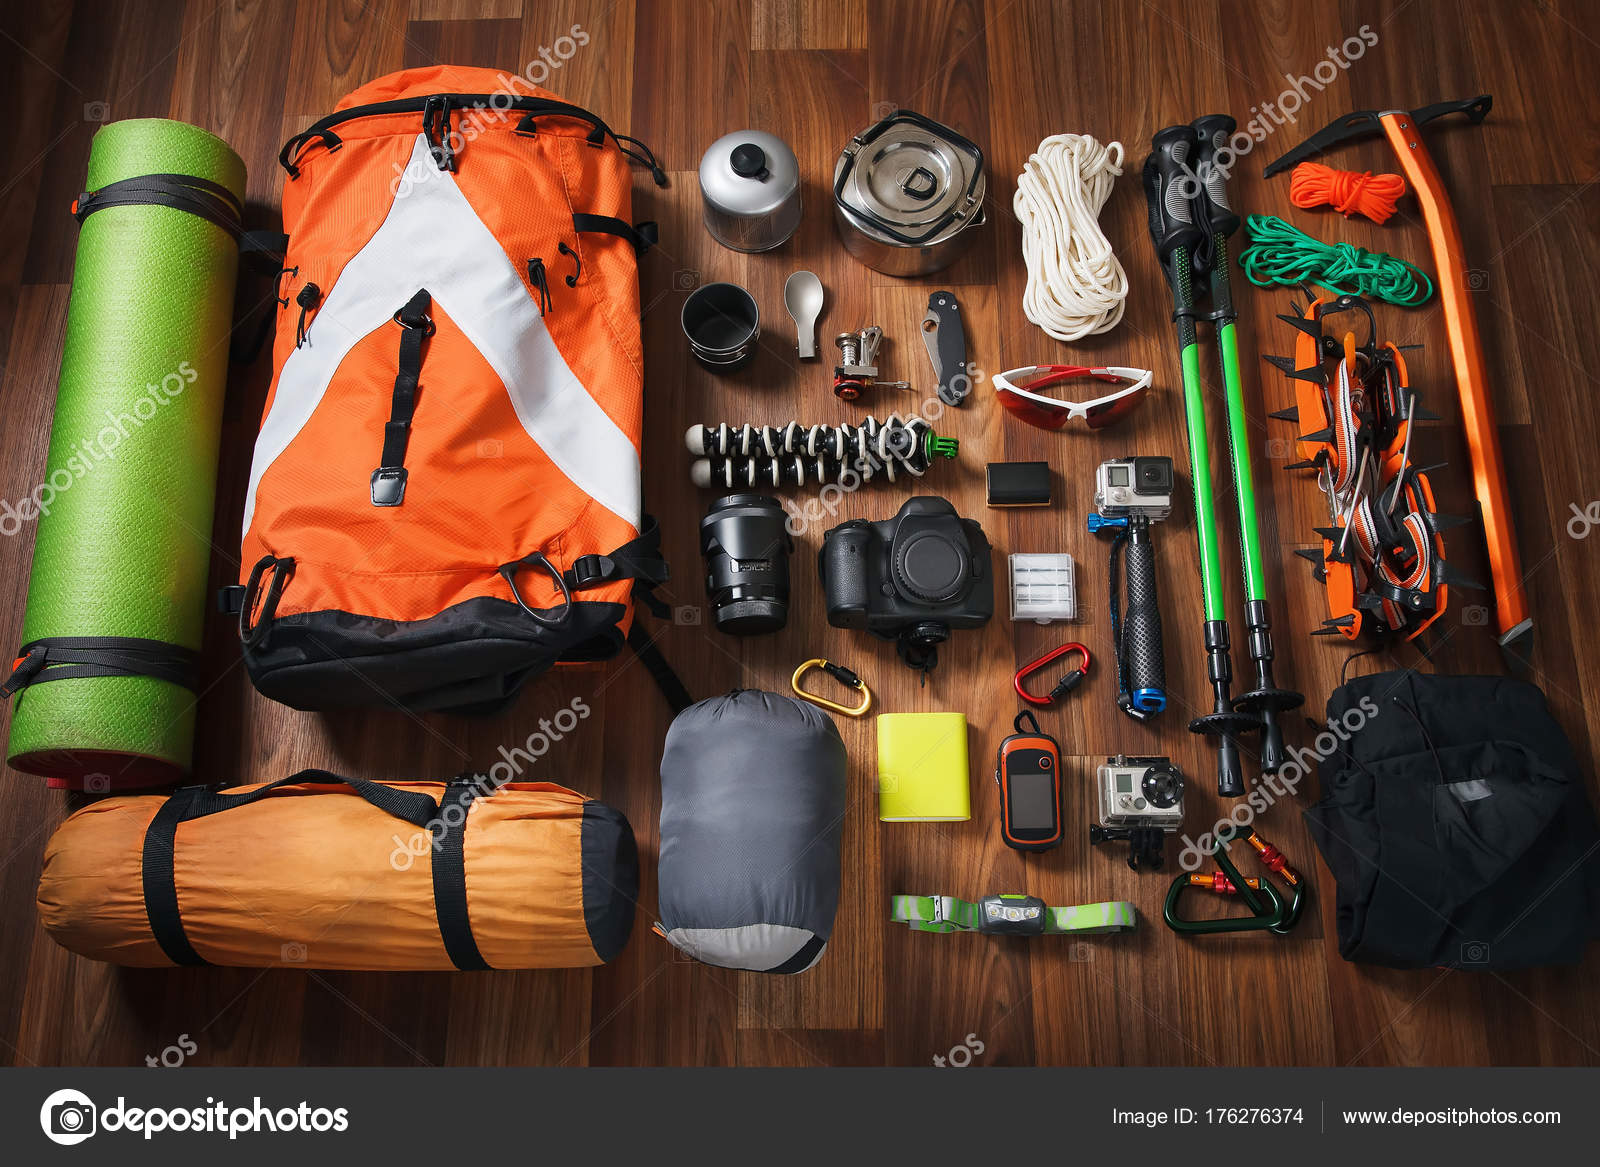 ed2c46b81c8aa3 Equipment for mountaineering and hiking on wooden background ...